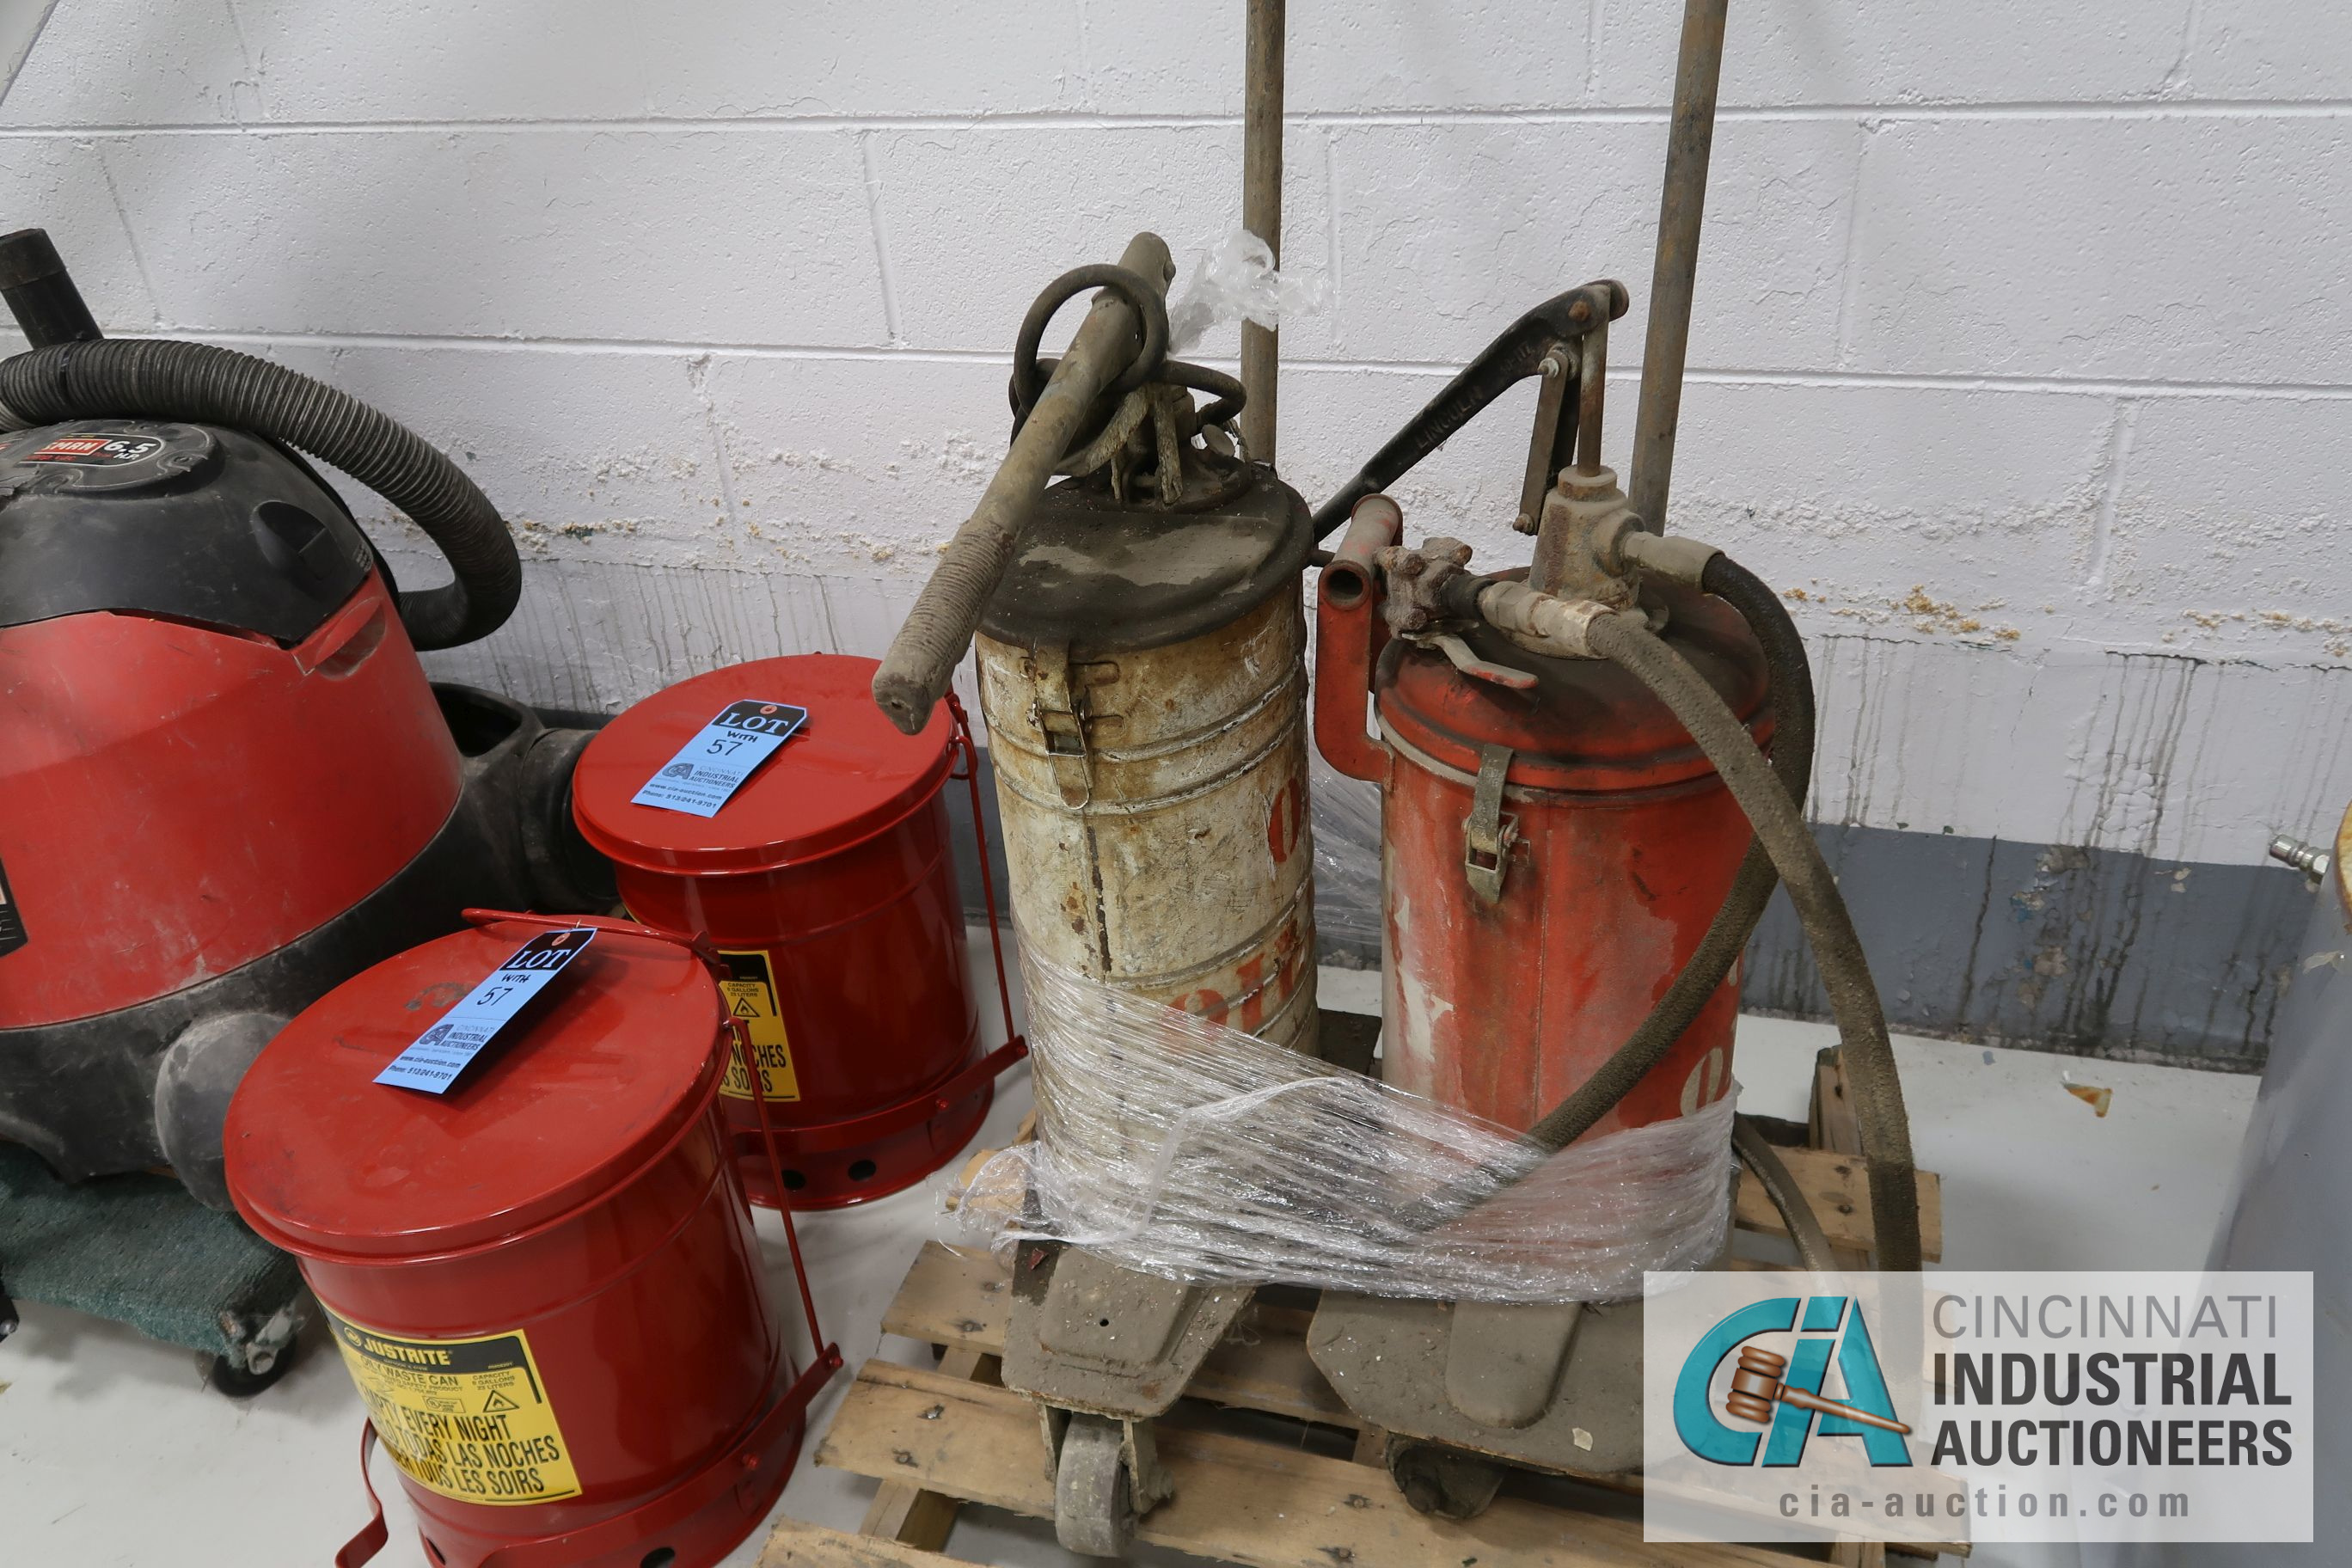 (LOT) MISCELLANEOUS - SAND BLAST POT, KETTLE, HYDRAULIC OIL PUMPS, JUSTRITE OILY WASTE CAN, - Image 3 of 4